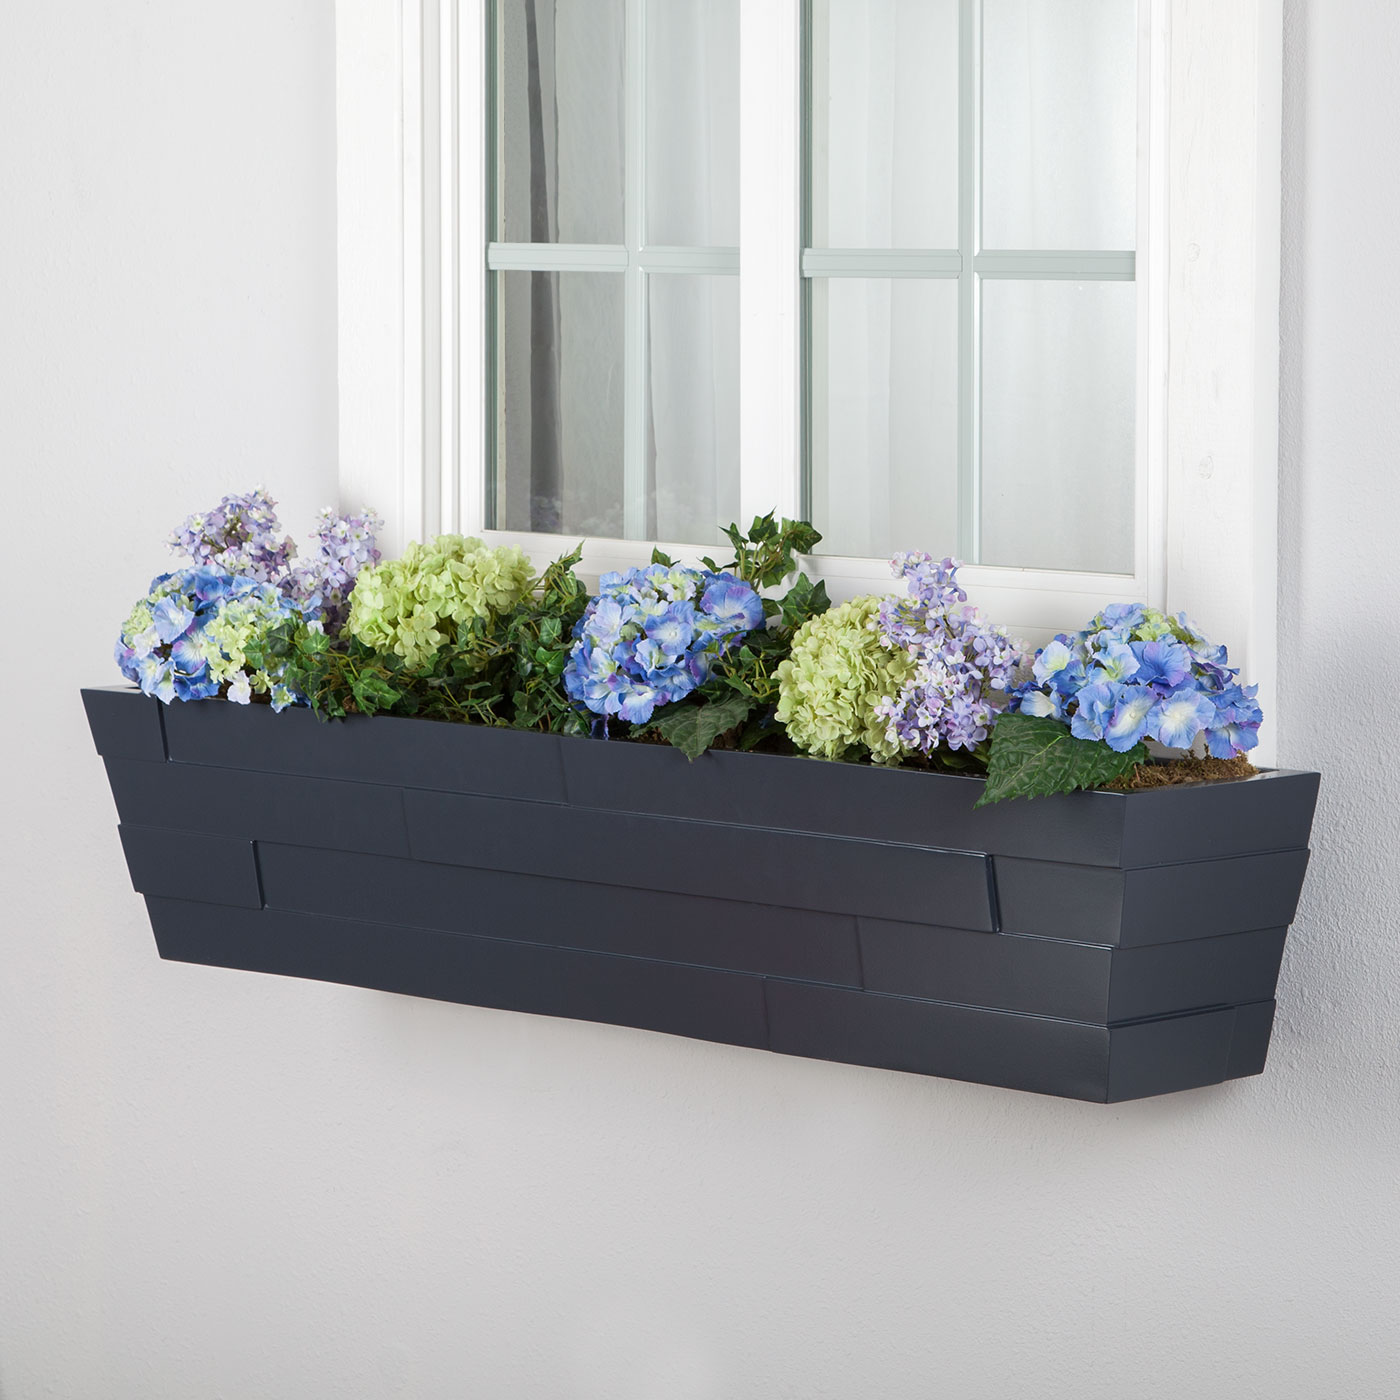 Dimensional Modern Window Boxes for Homes Hooks & Lattice